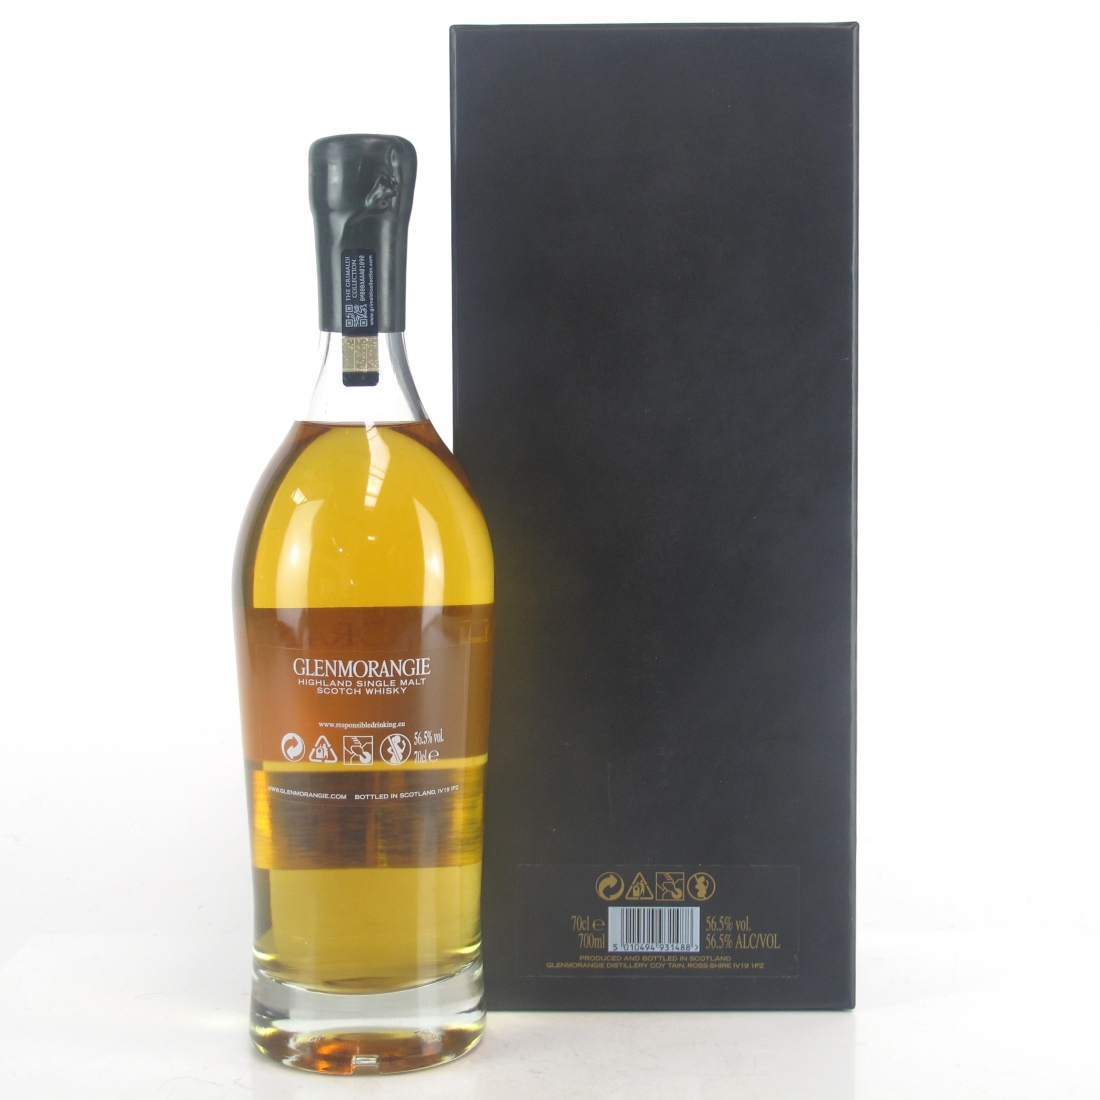 Glenmorangie 12 Year Old Rare Single Cask / in Honour of H.S.H Prince Albert II of Monaco